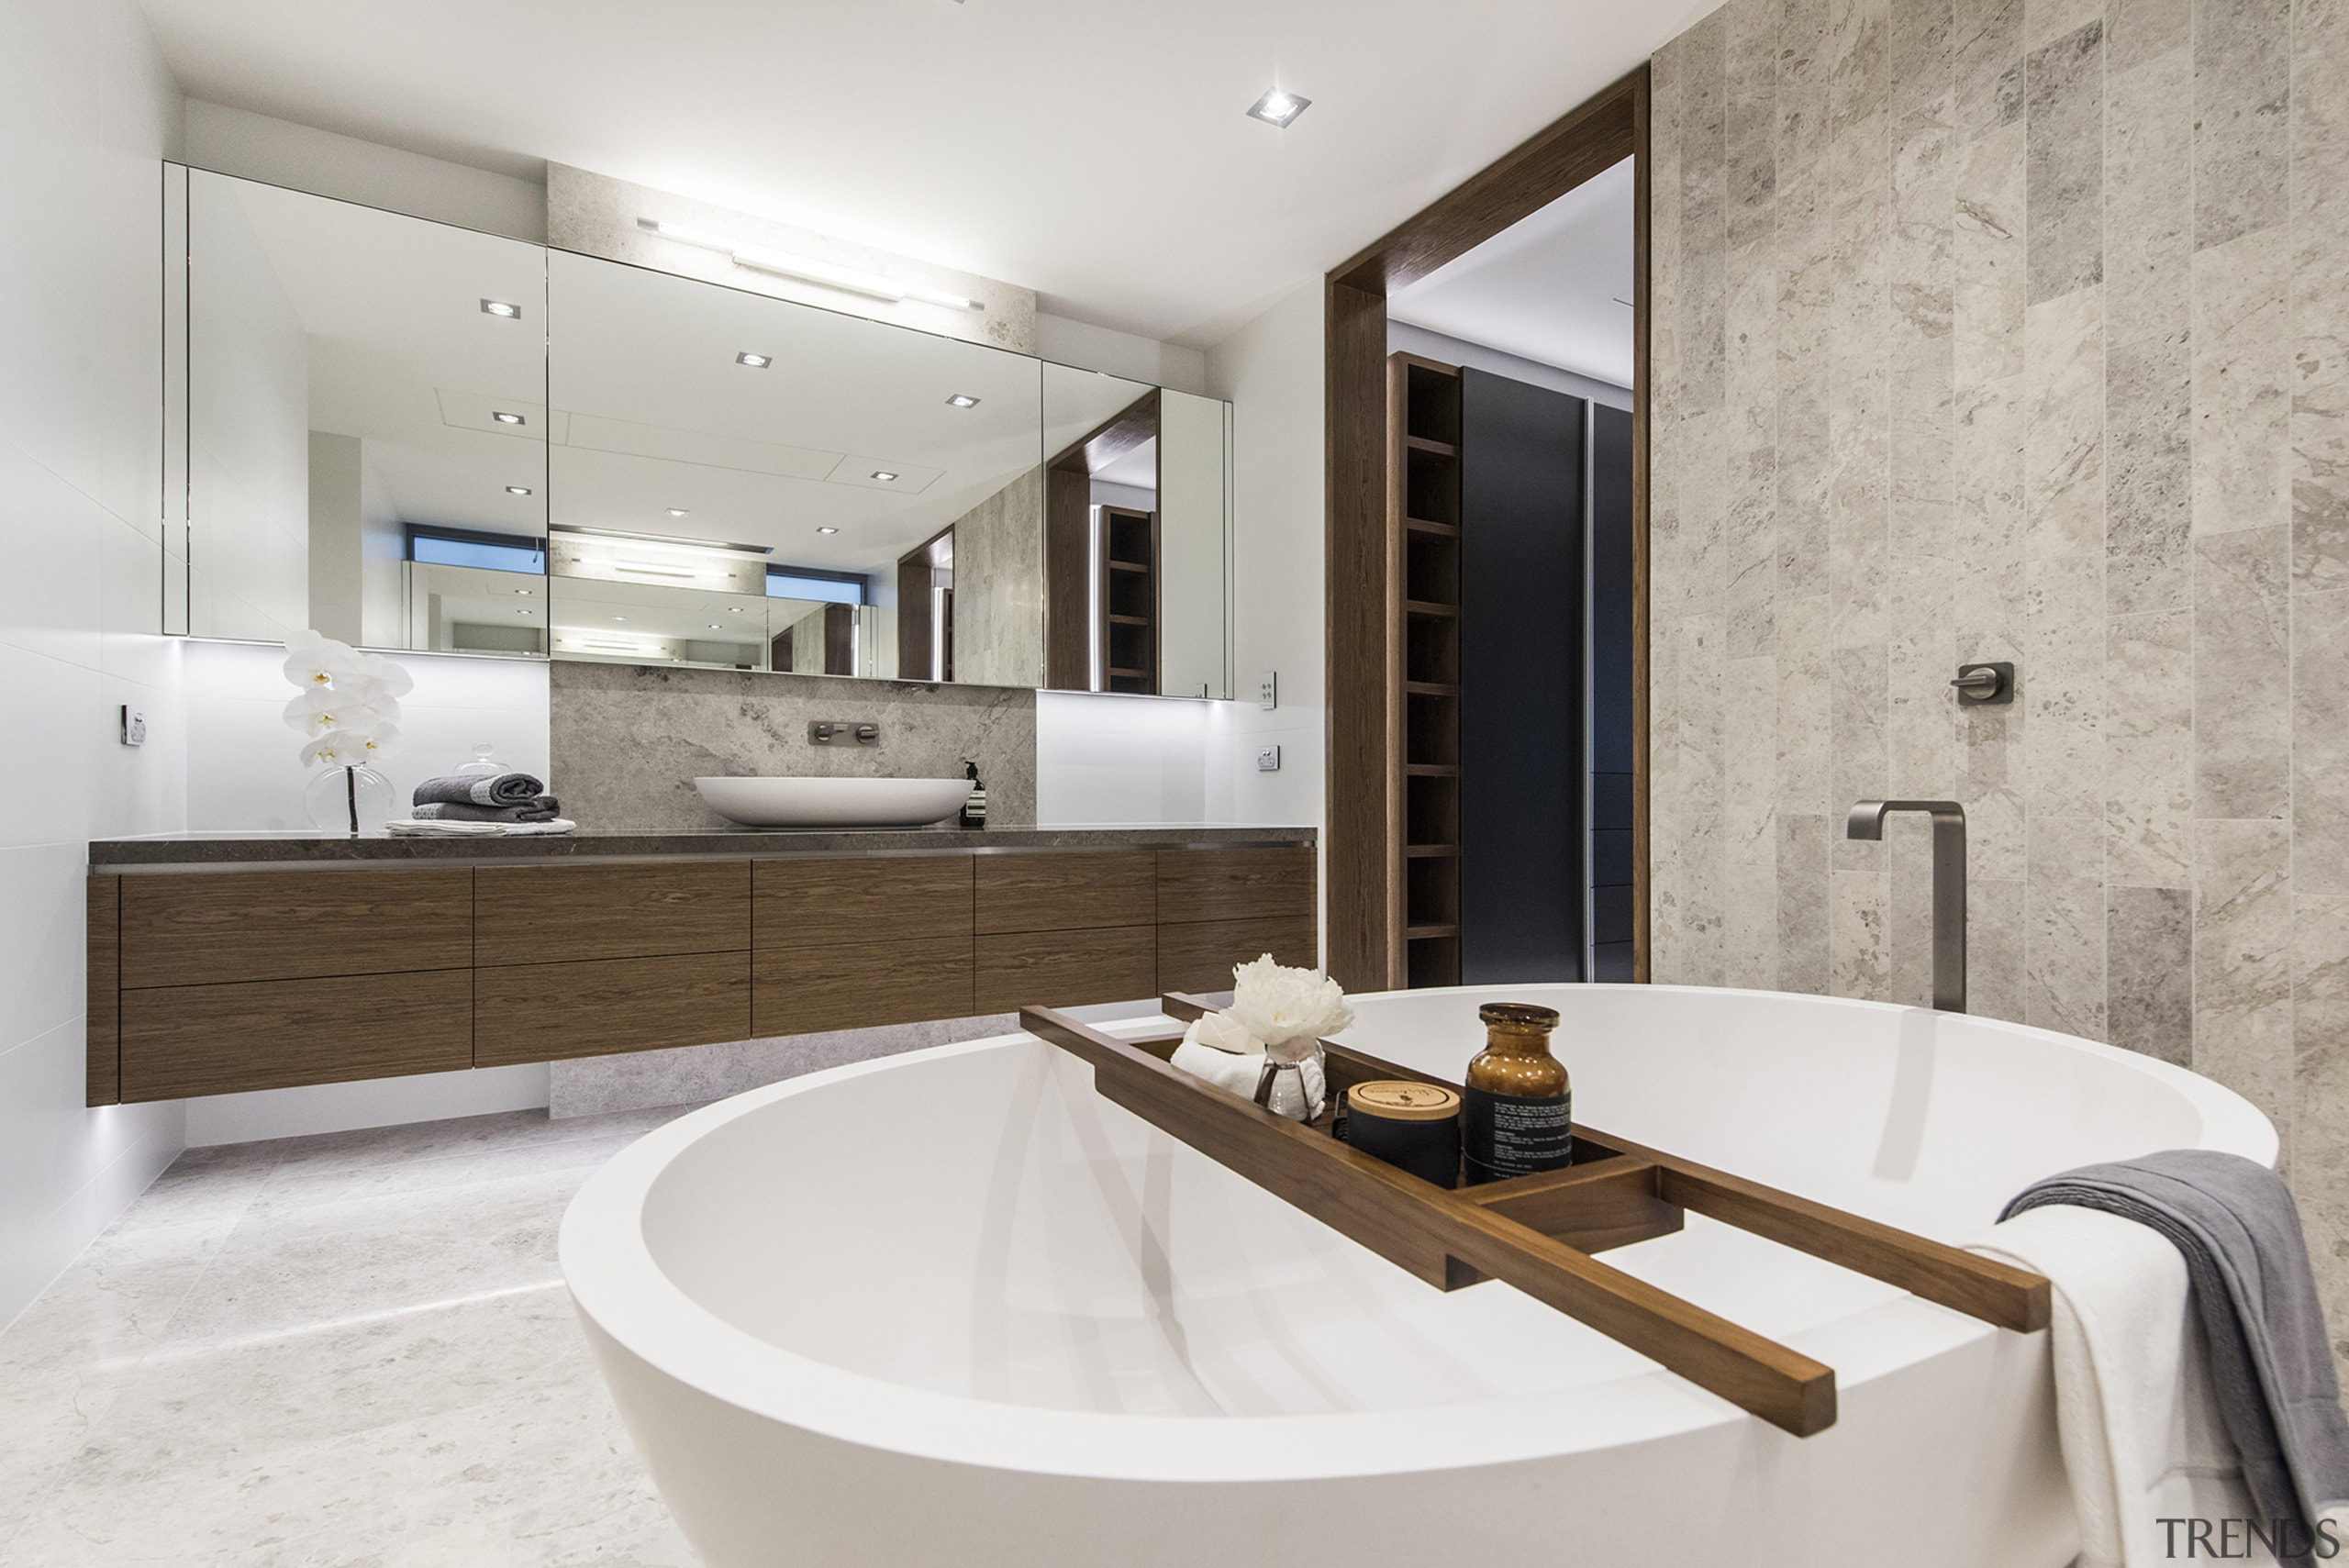 The feature wall behind the bathtub in this architecture, bathroom, interior design, property, real estate, room, sink, tap, gray